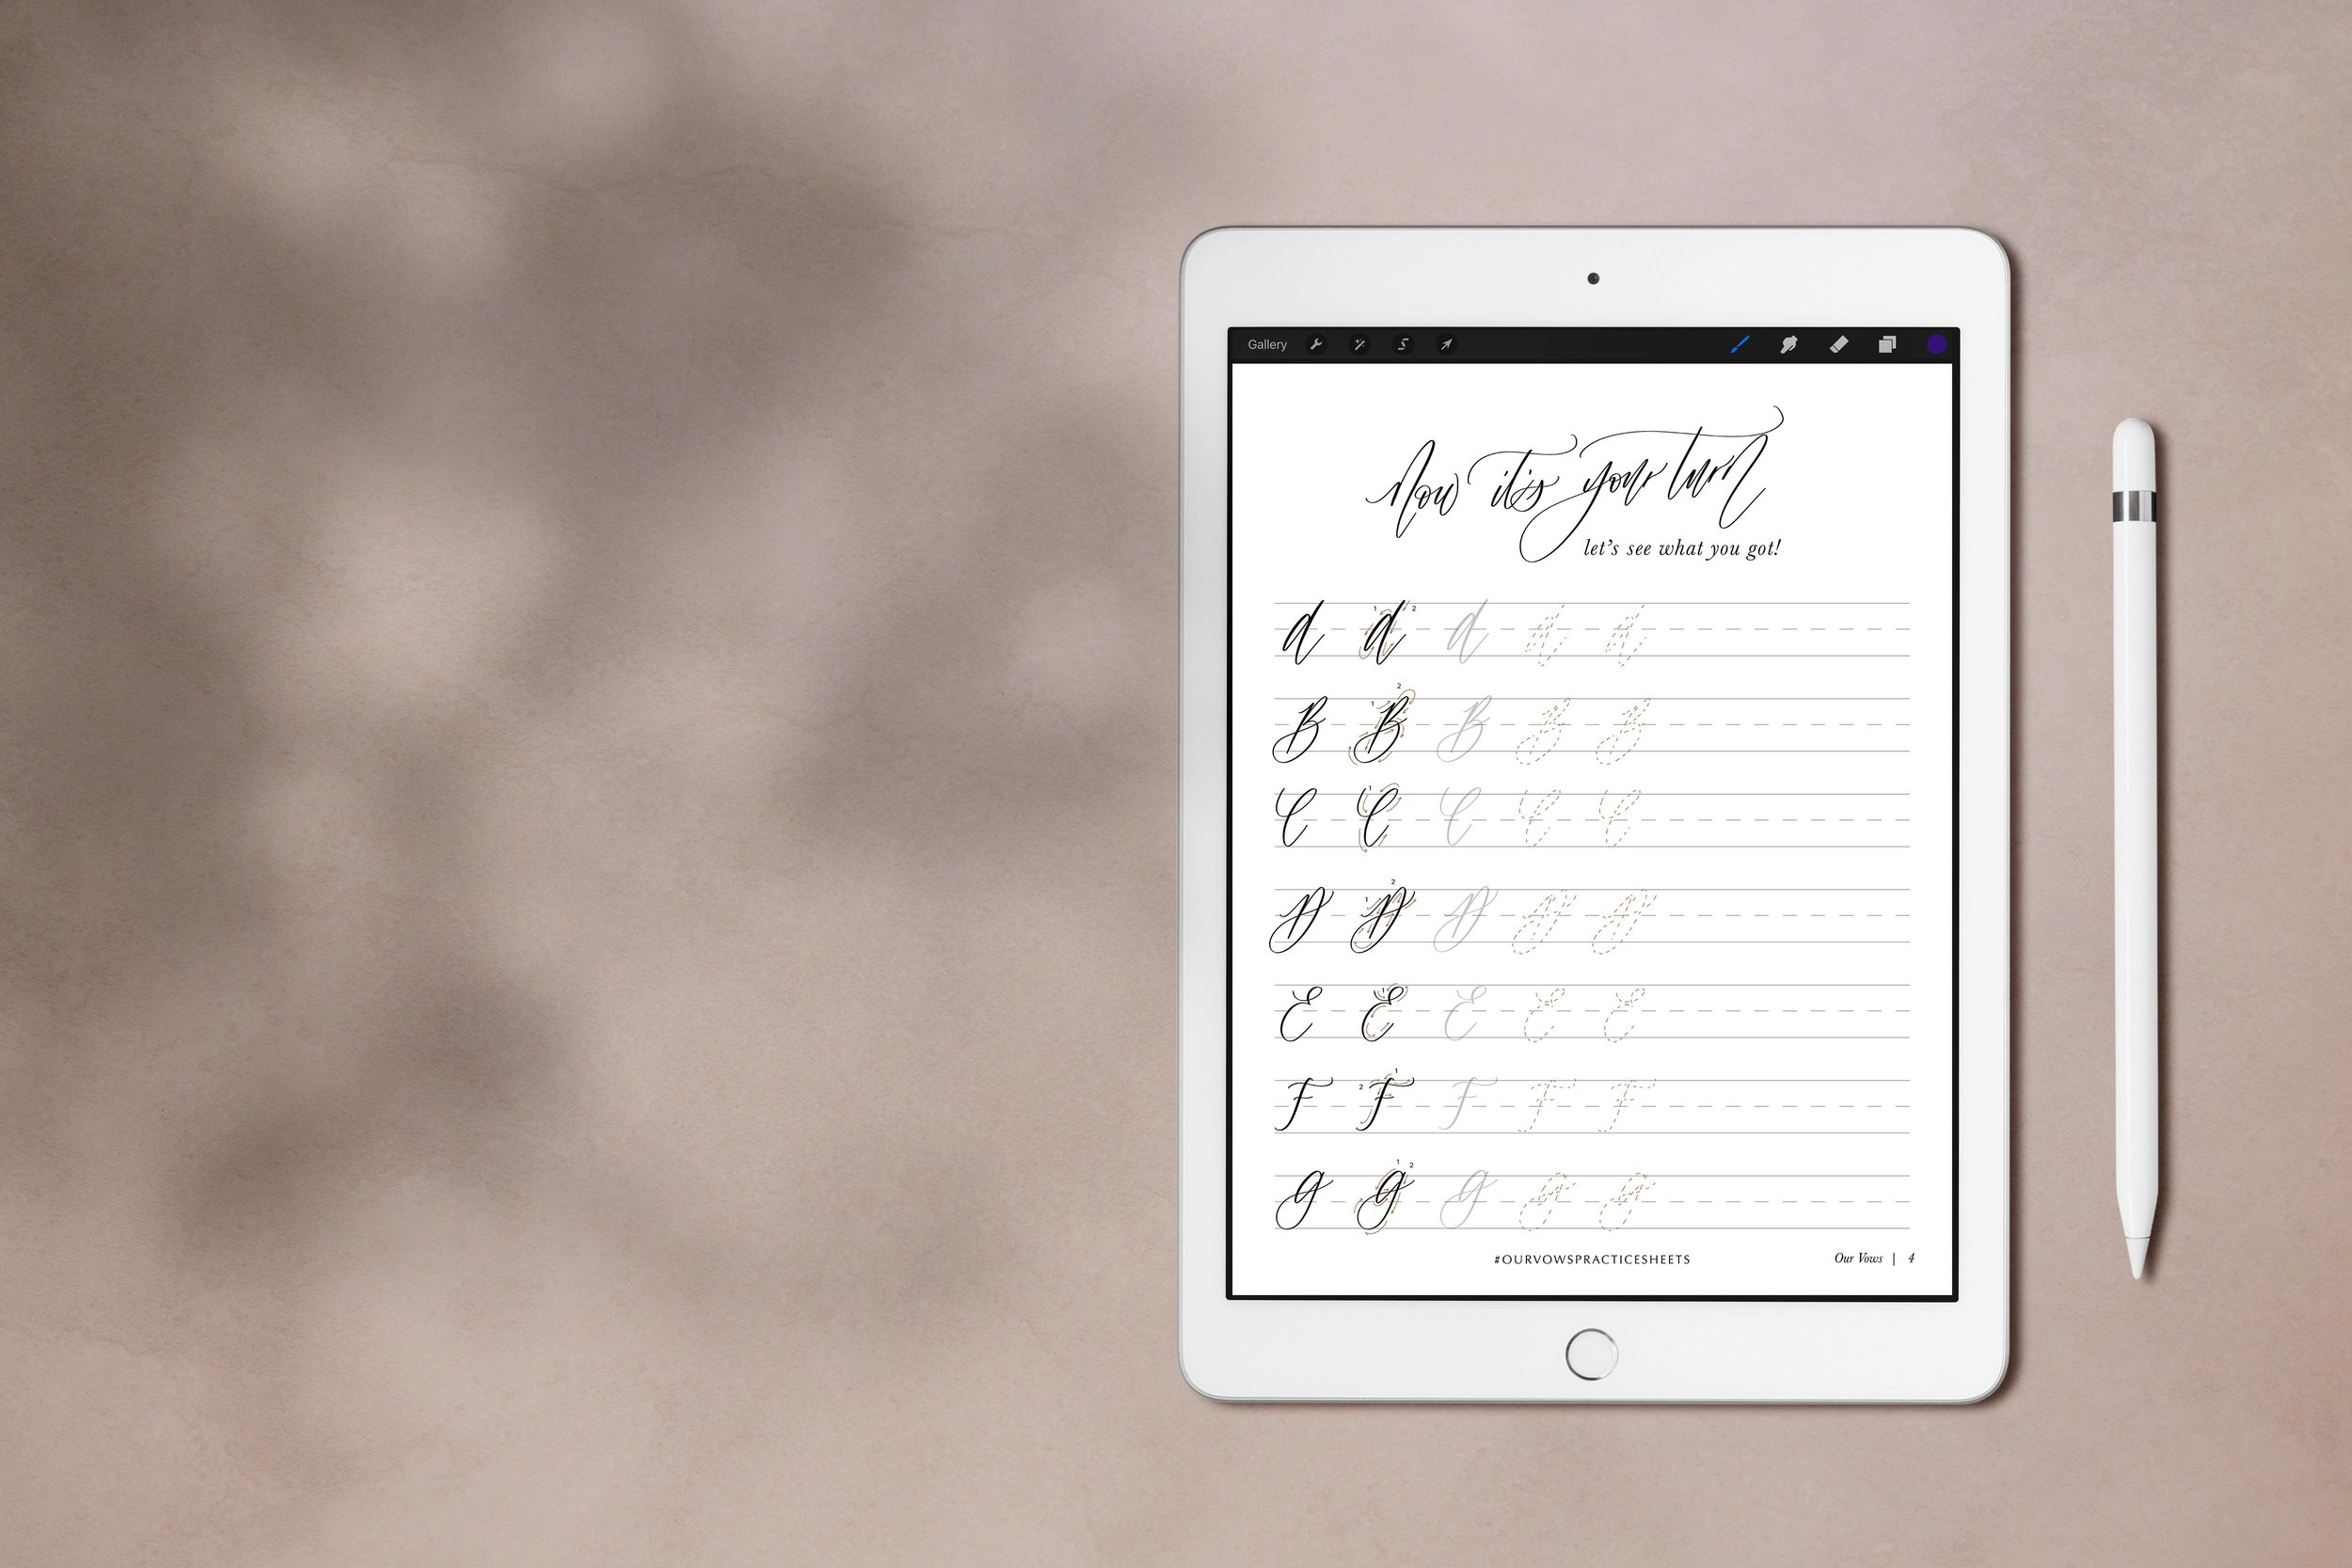 Free modern calligraphy iPad worksheets by Our Vows